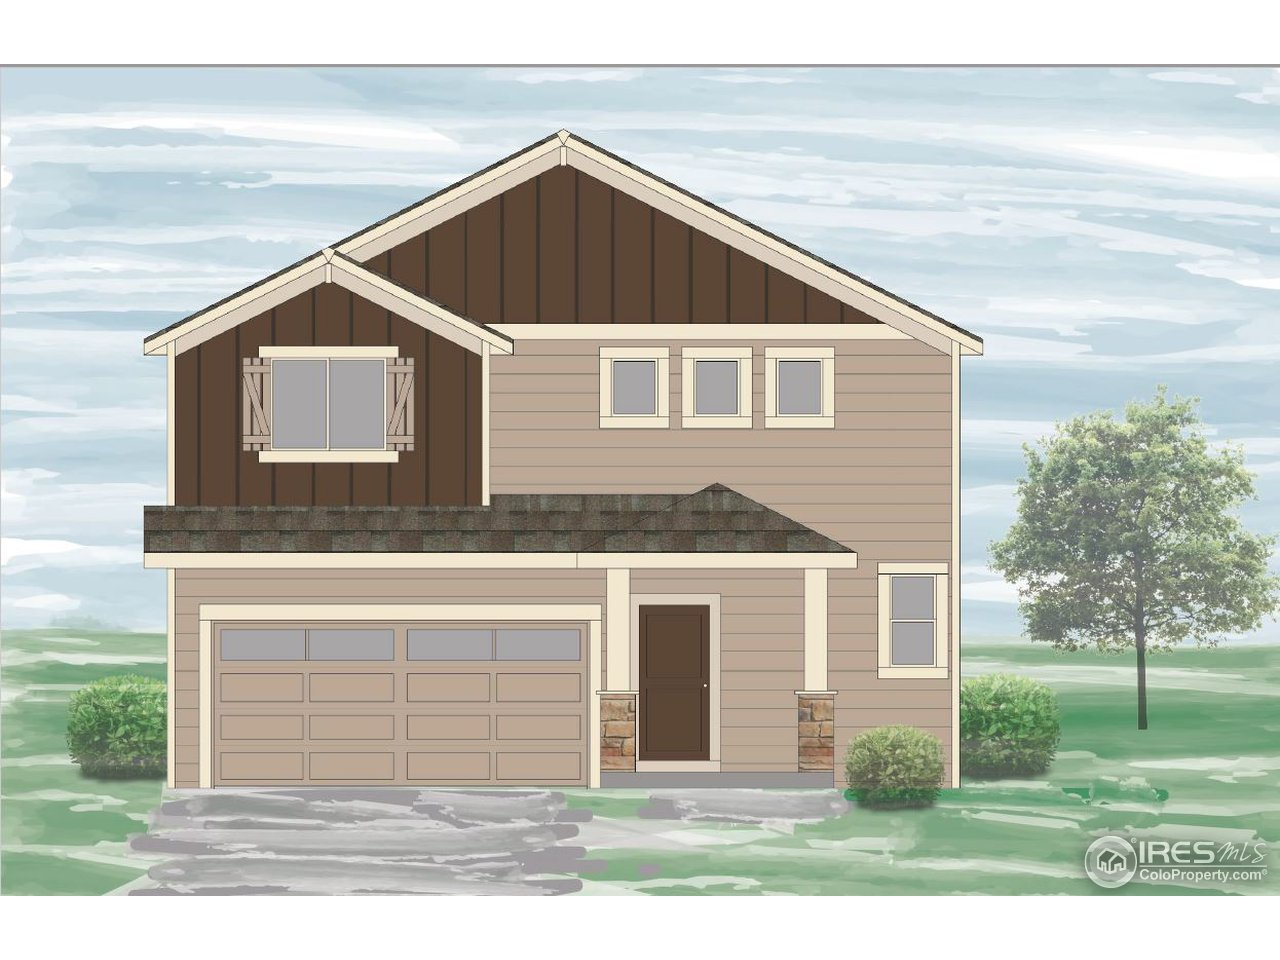 The Colorado Sun by Aspen Homes. Lg master w/walk-in closet. Eat-in kitchen w/island, granite, undermount sink 30inch upper cabinets, walk-in pantry & choice of SS or slate appliances. Upper flr loft. Jack & Jill bath. Standards: A/C, Smart Phone compatible thermostat, tankless H20 heater, & 9ft walls on main, front yard landscape. Save $$ monthly w/this highly efficient home-95%eff furnace & extensive air sealing package. $3,000 Closing Cost Credit w/Preferred Lender- choose from 3!